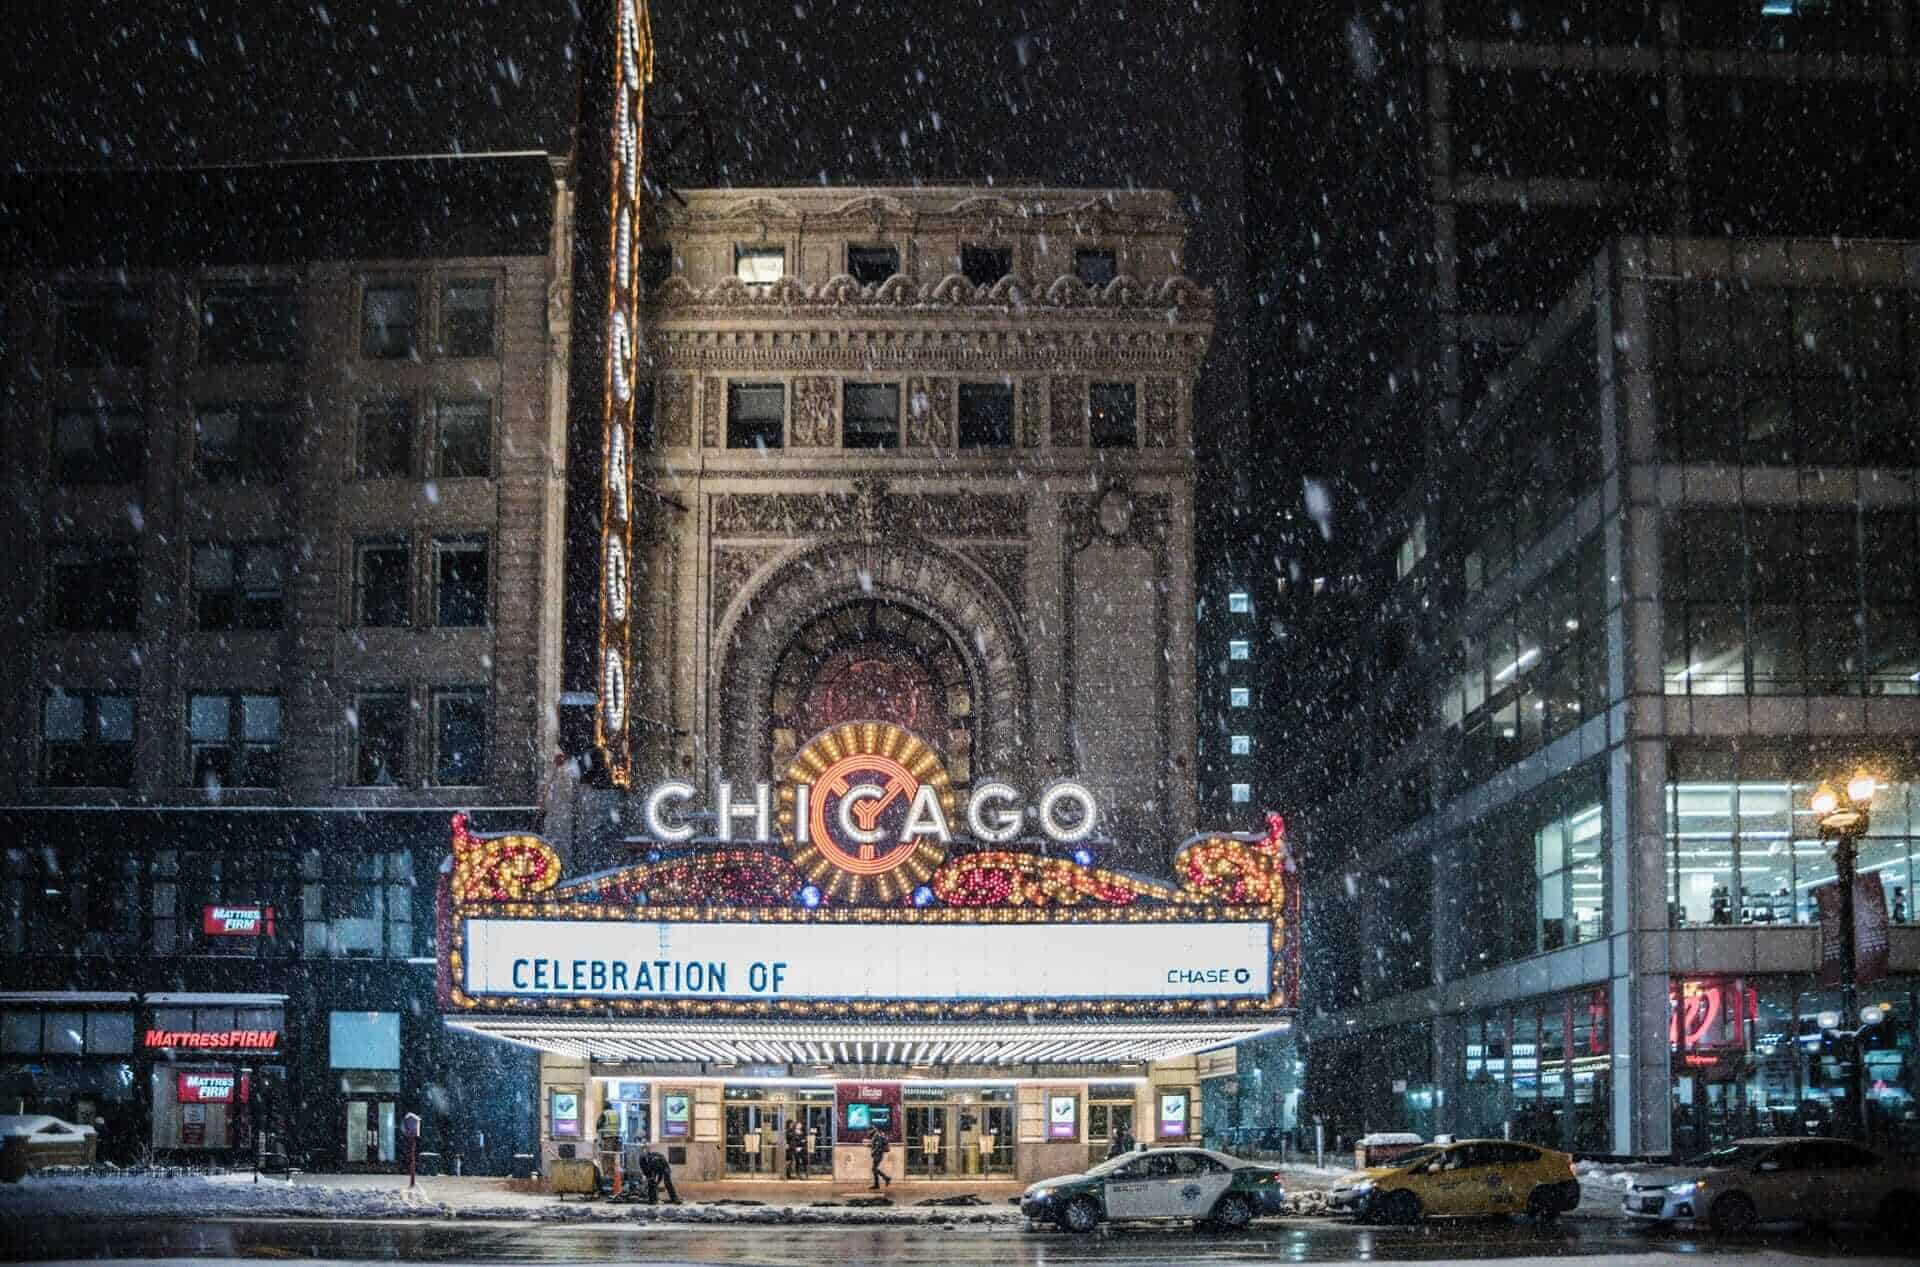 Winters in Chicago